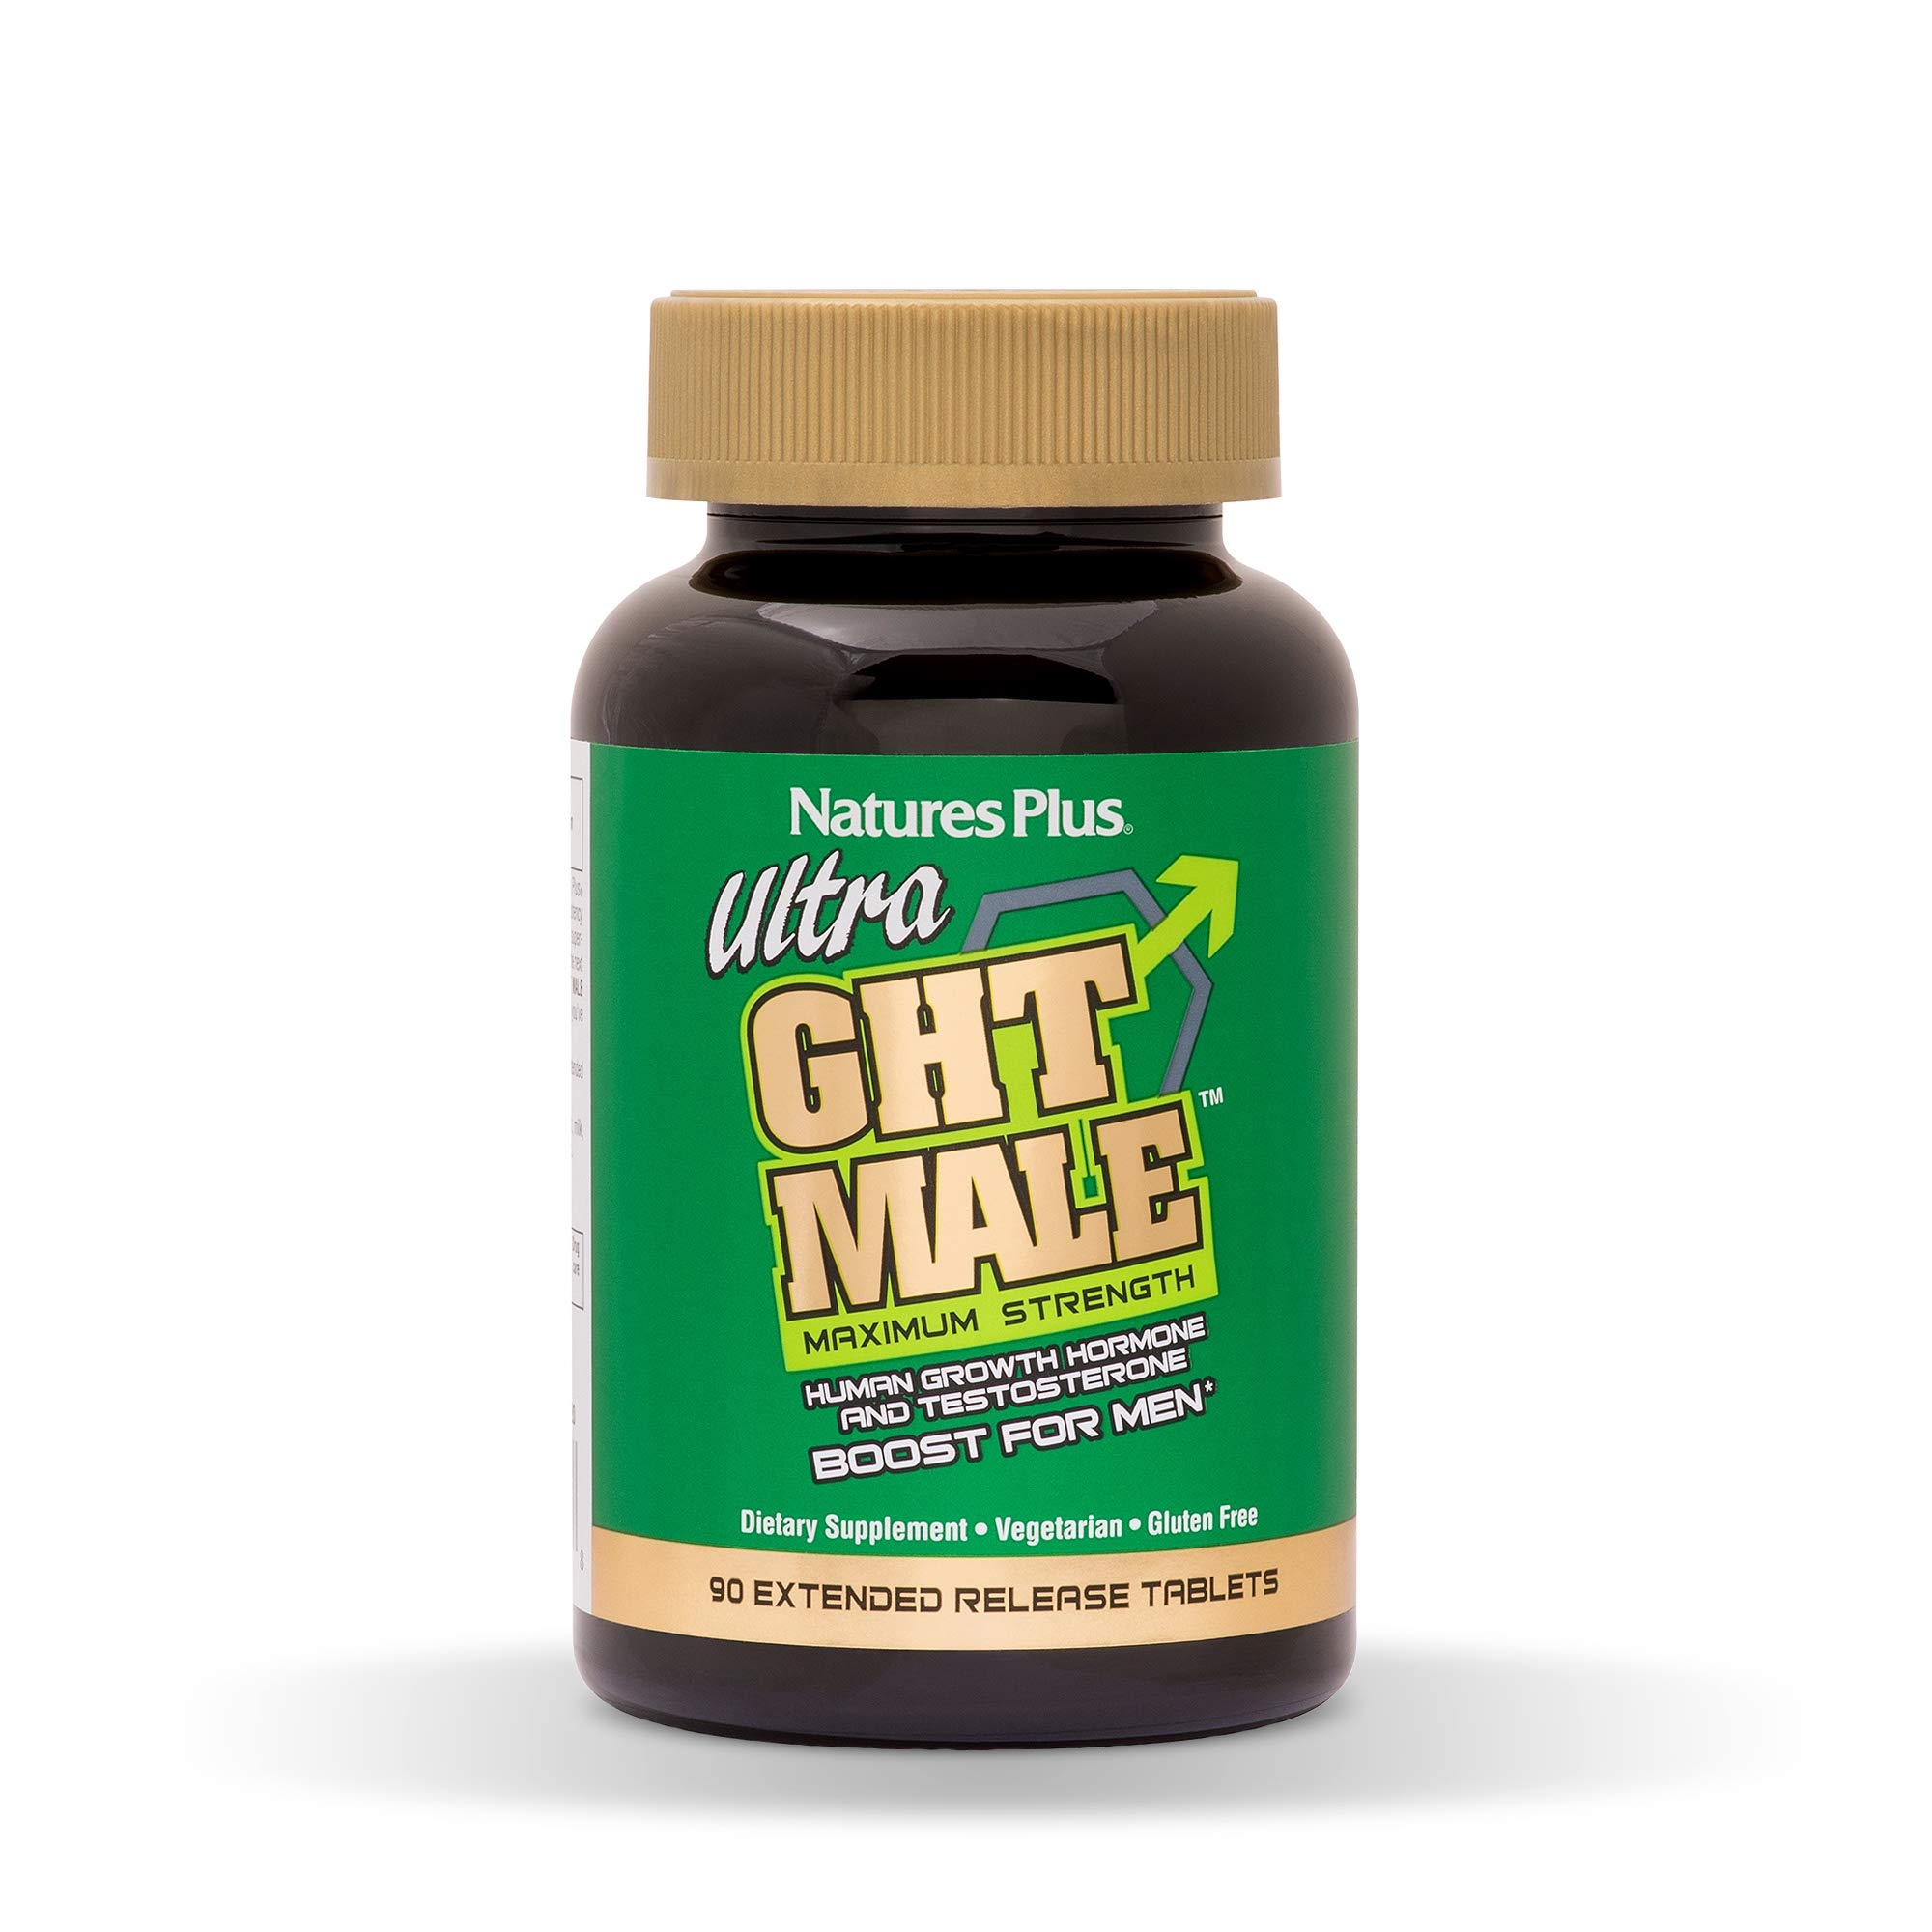 NaturesPlus Ultra GHT Male Extended Release Bilayer Tablets